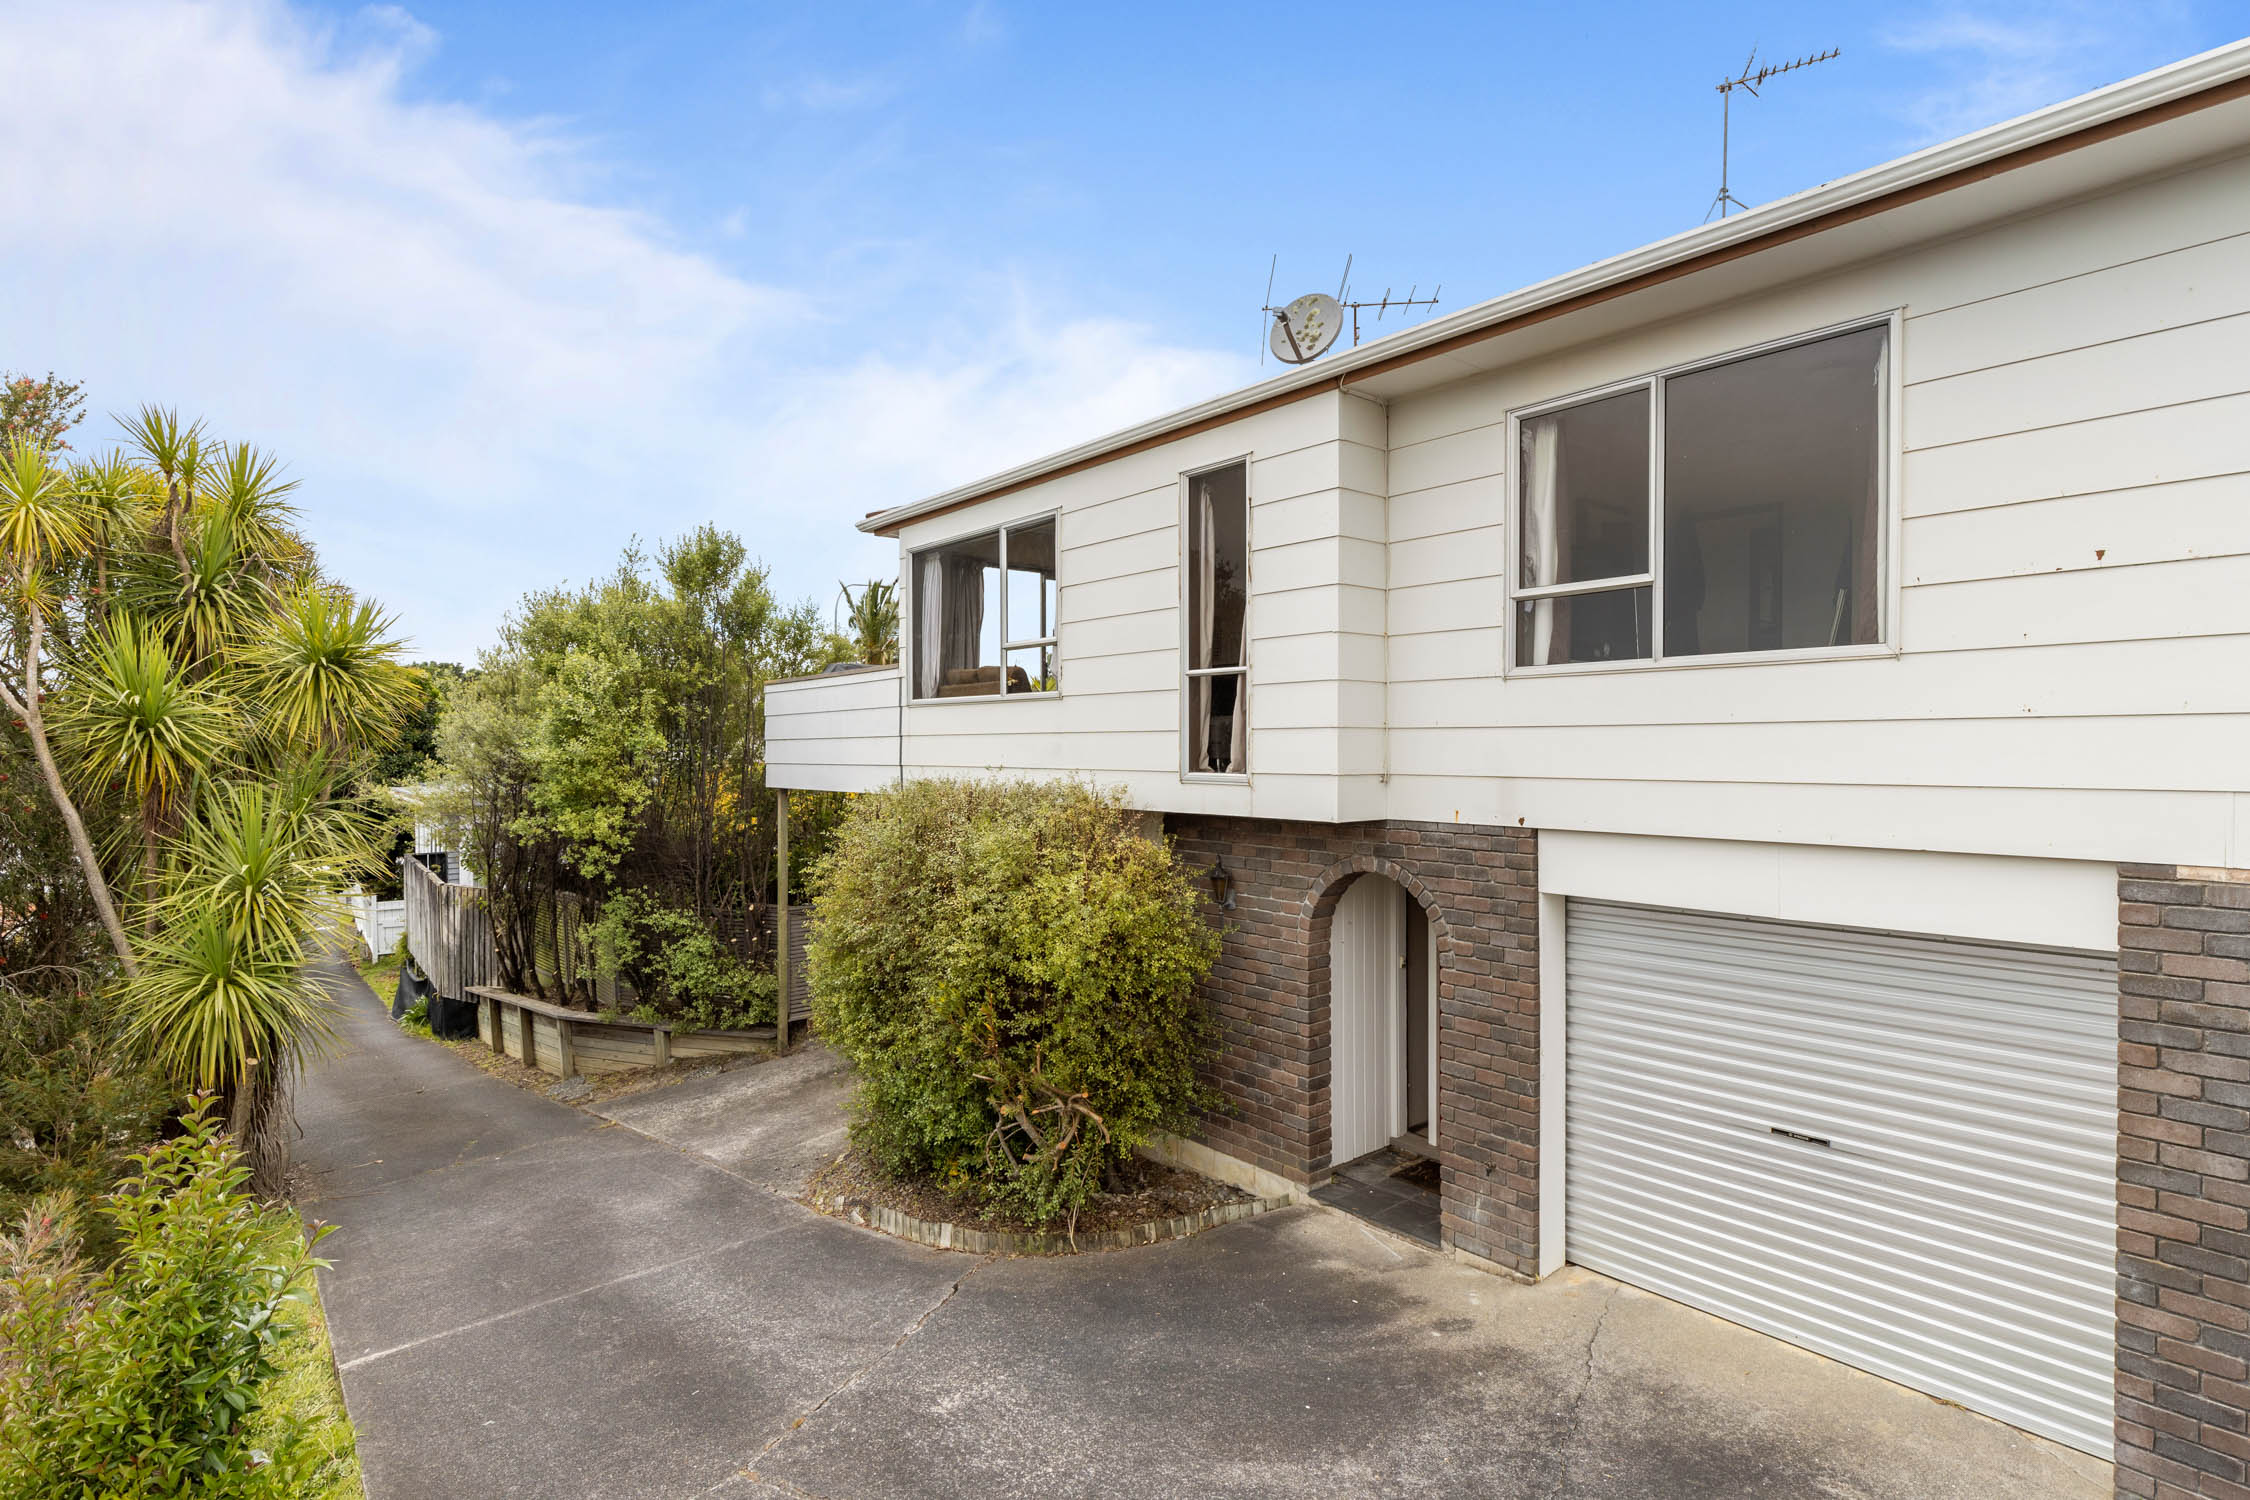 49229Open home times